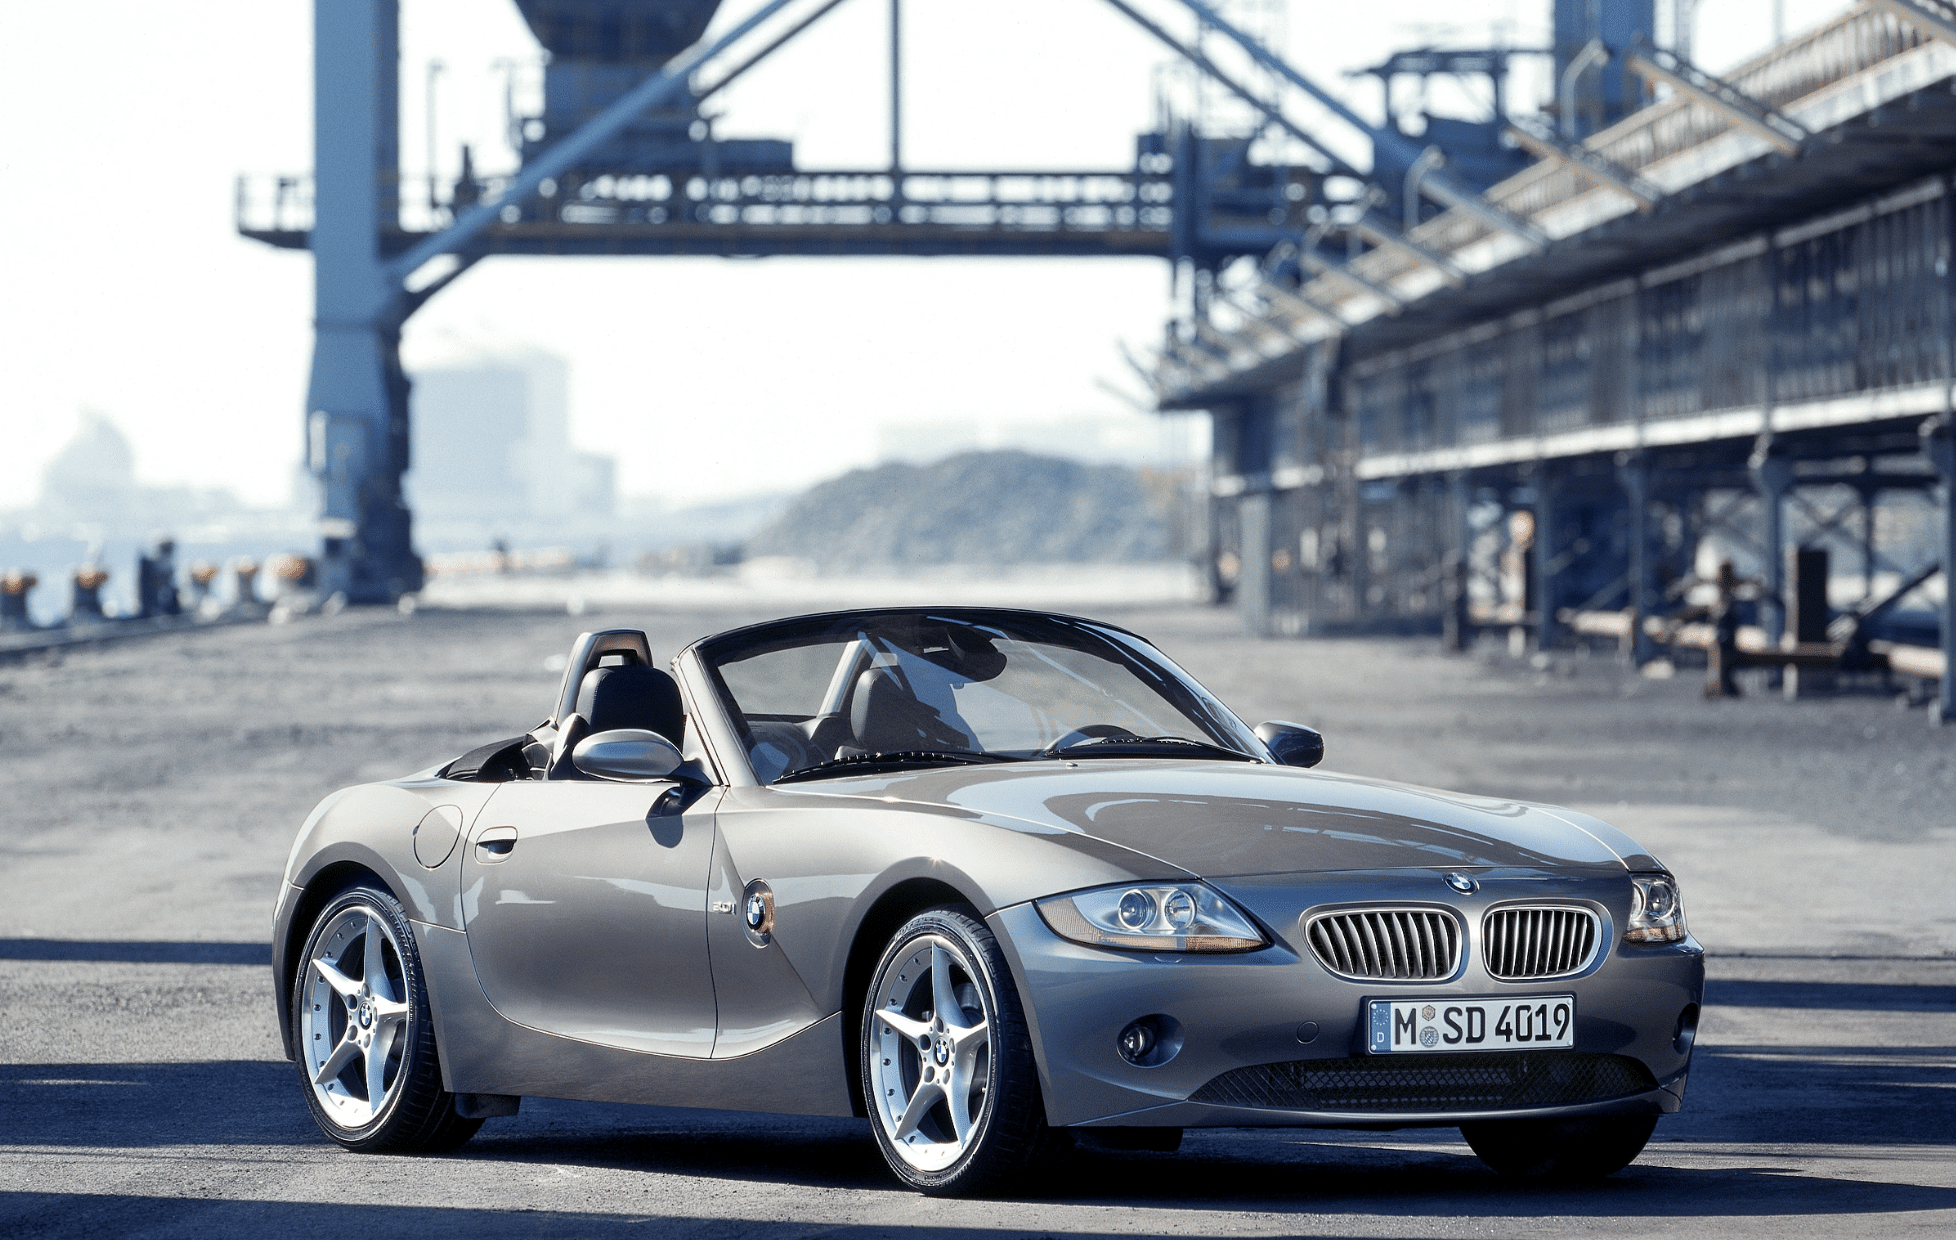 BMW, Z4, BMW Z4, Clive Owen, BMW Films, convertible, roadster, ragtop, sports car, two seater, classic car, retro car, modern classic, cheap car, bargain car, featured, motoring, automotive, ebay, ebay motors, autotrader, car, cars